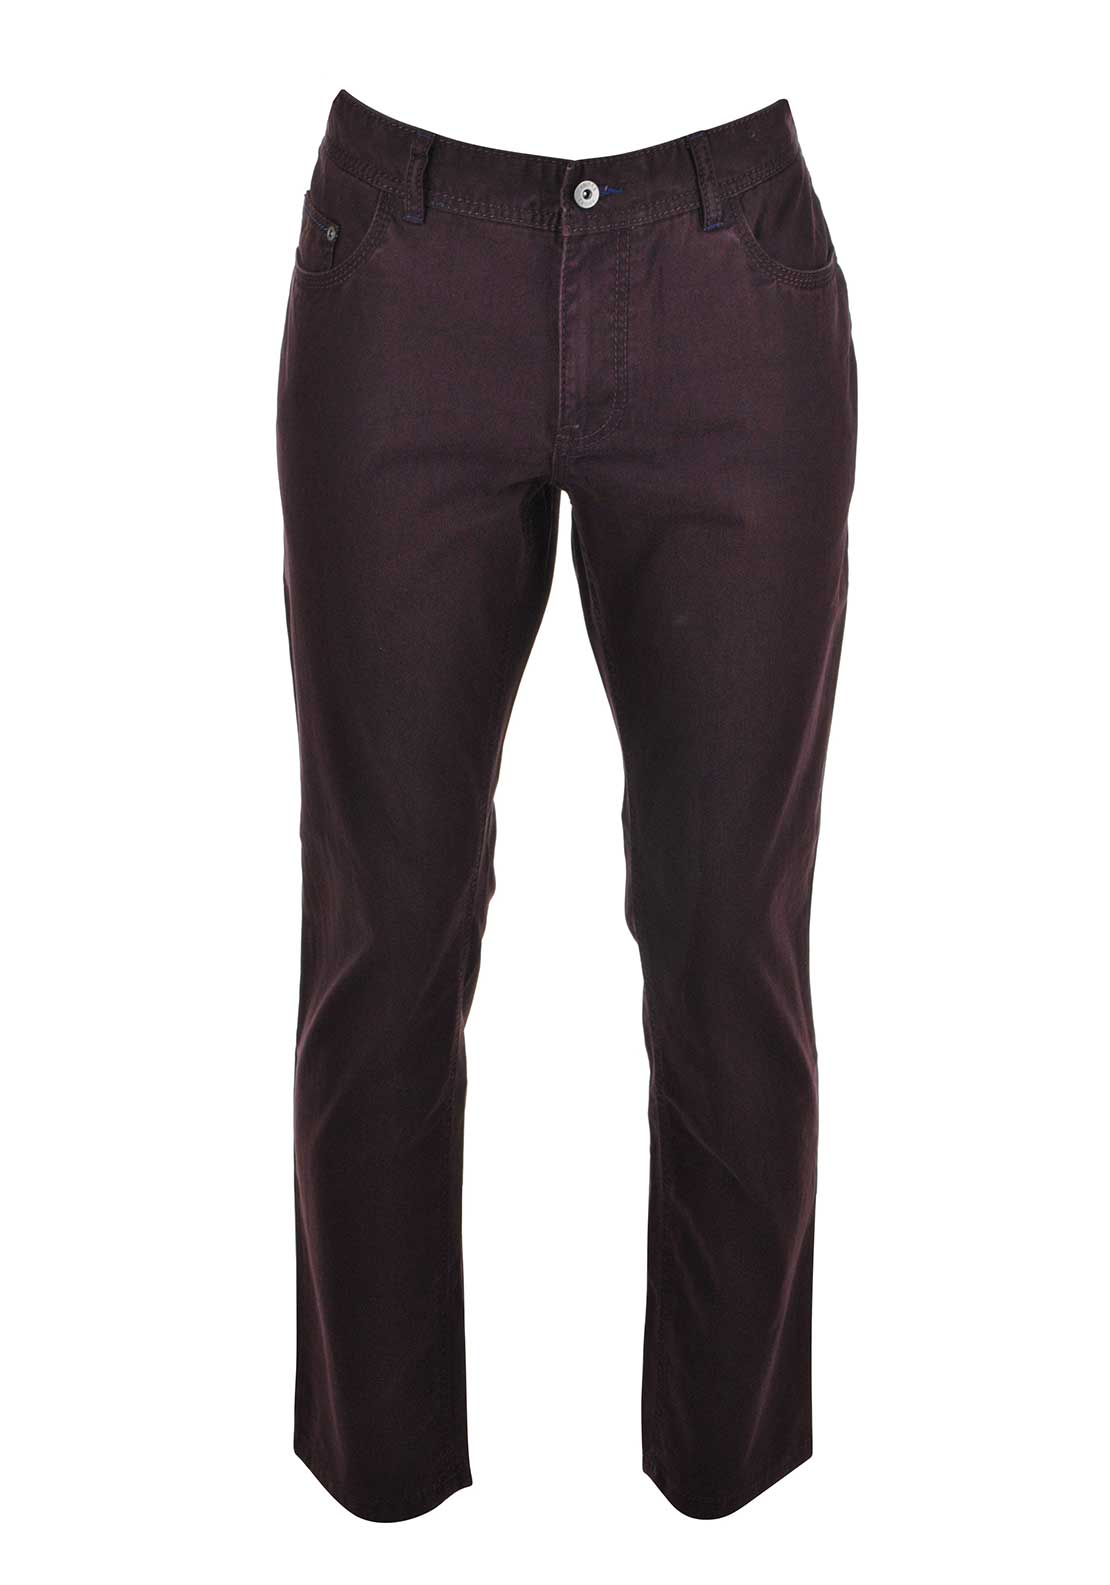 Andre Sterling Comfort Fit Jeans, Plum